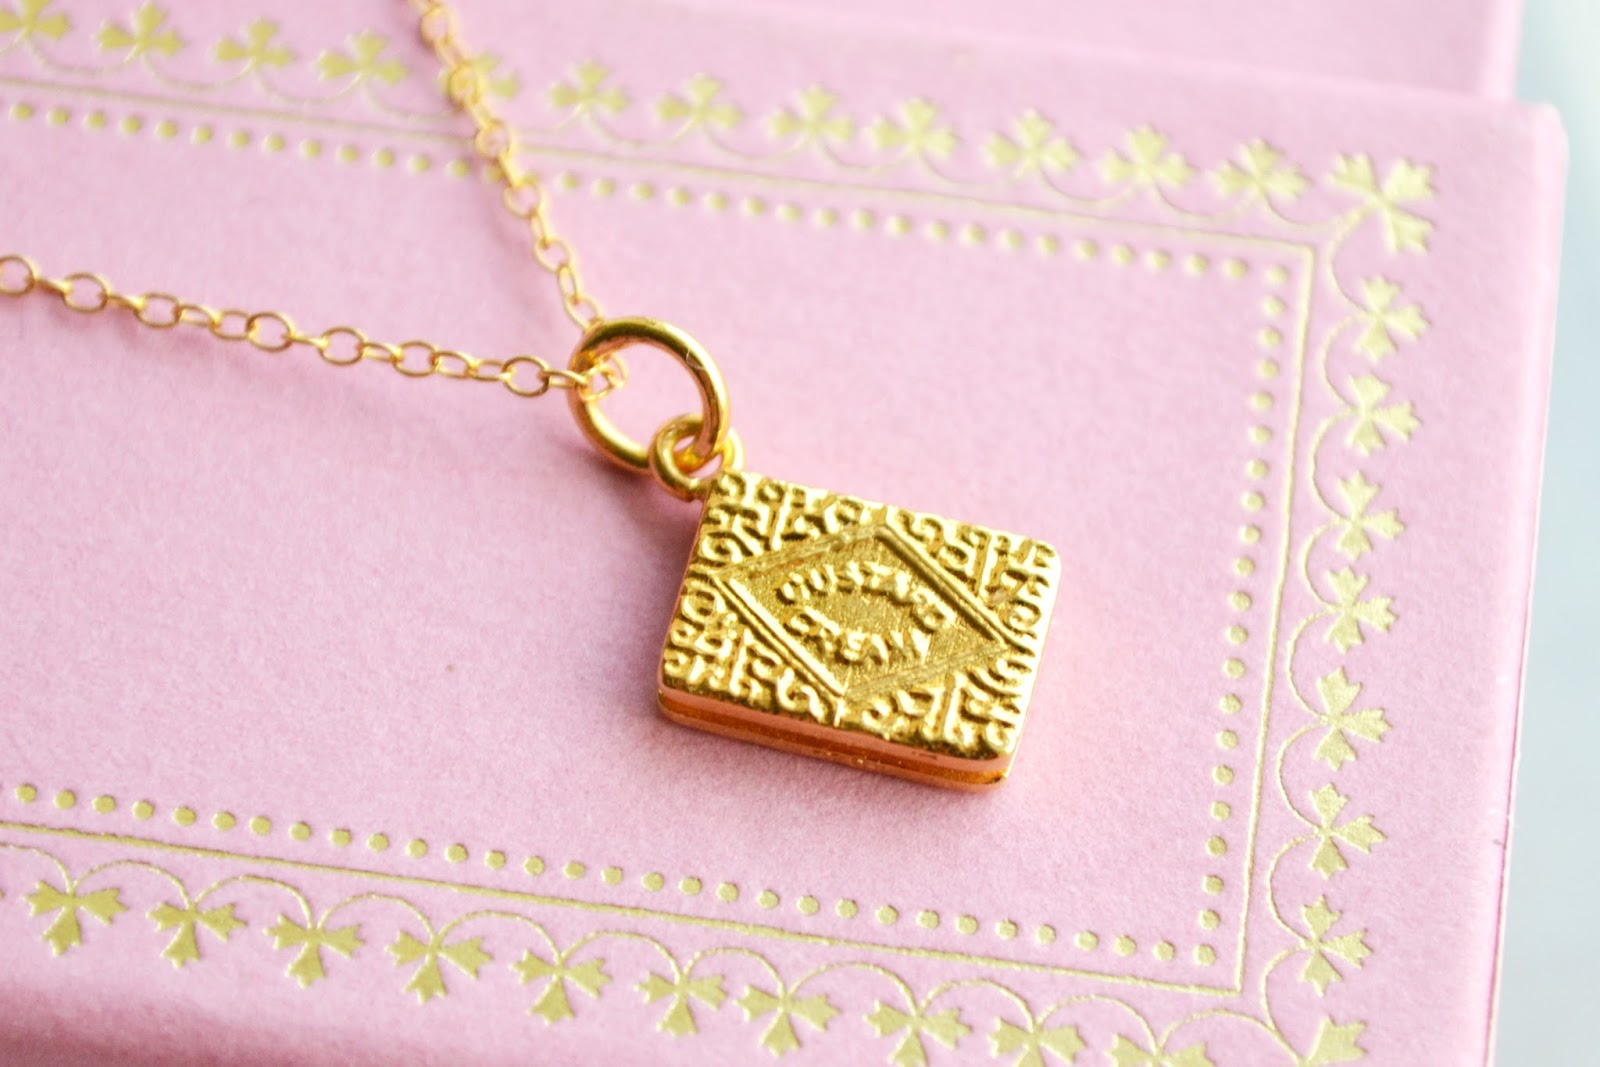 custard cream necklace, quirky jewellery, cute jewellery